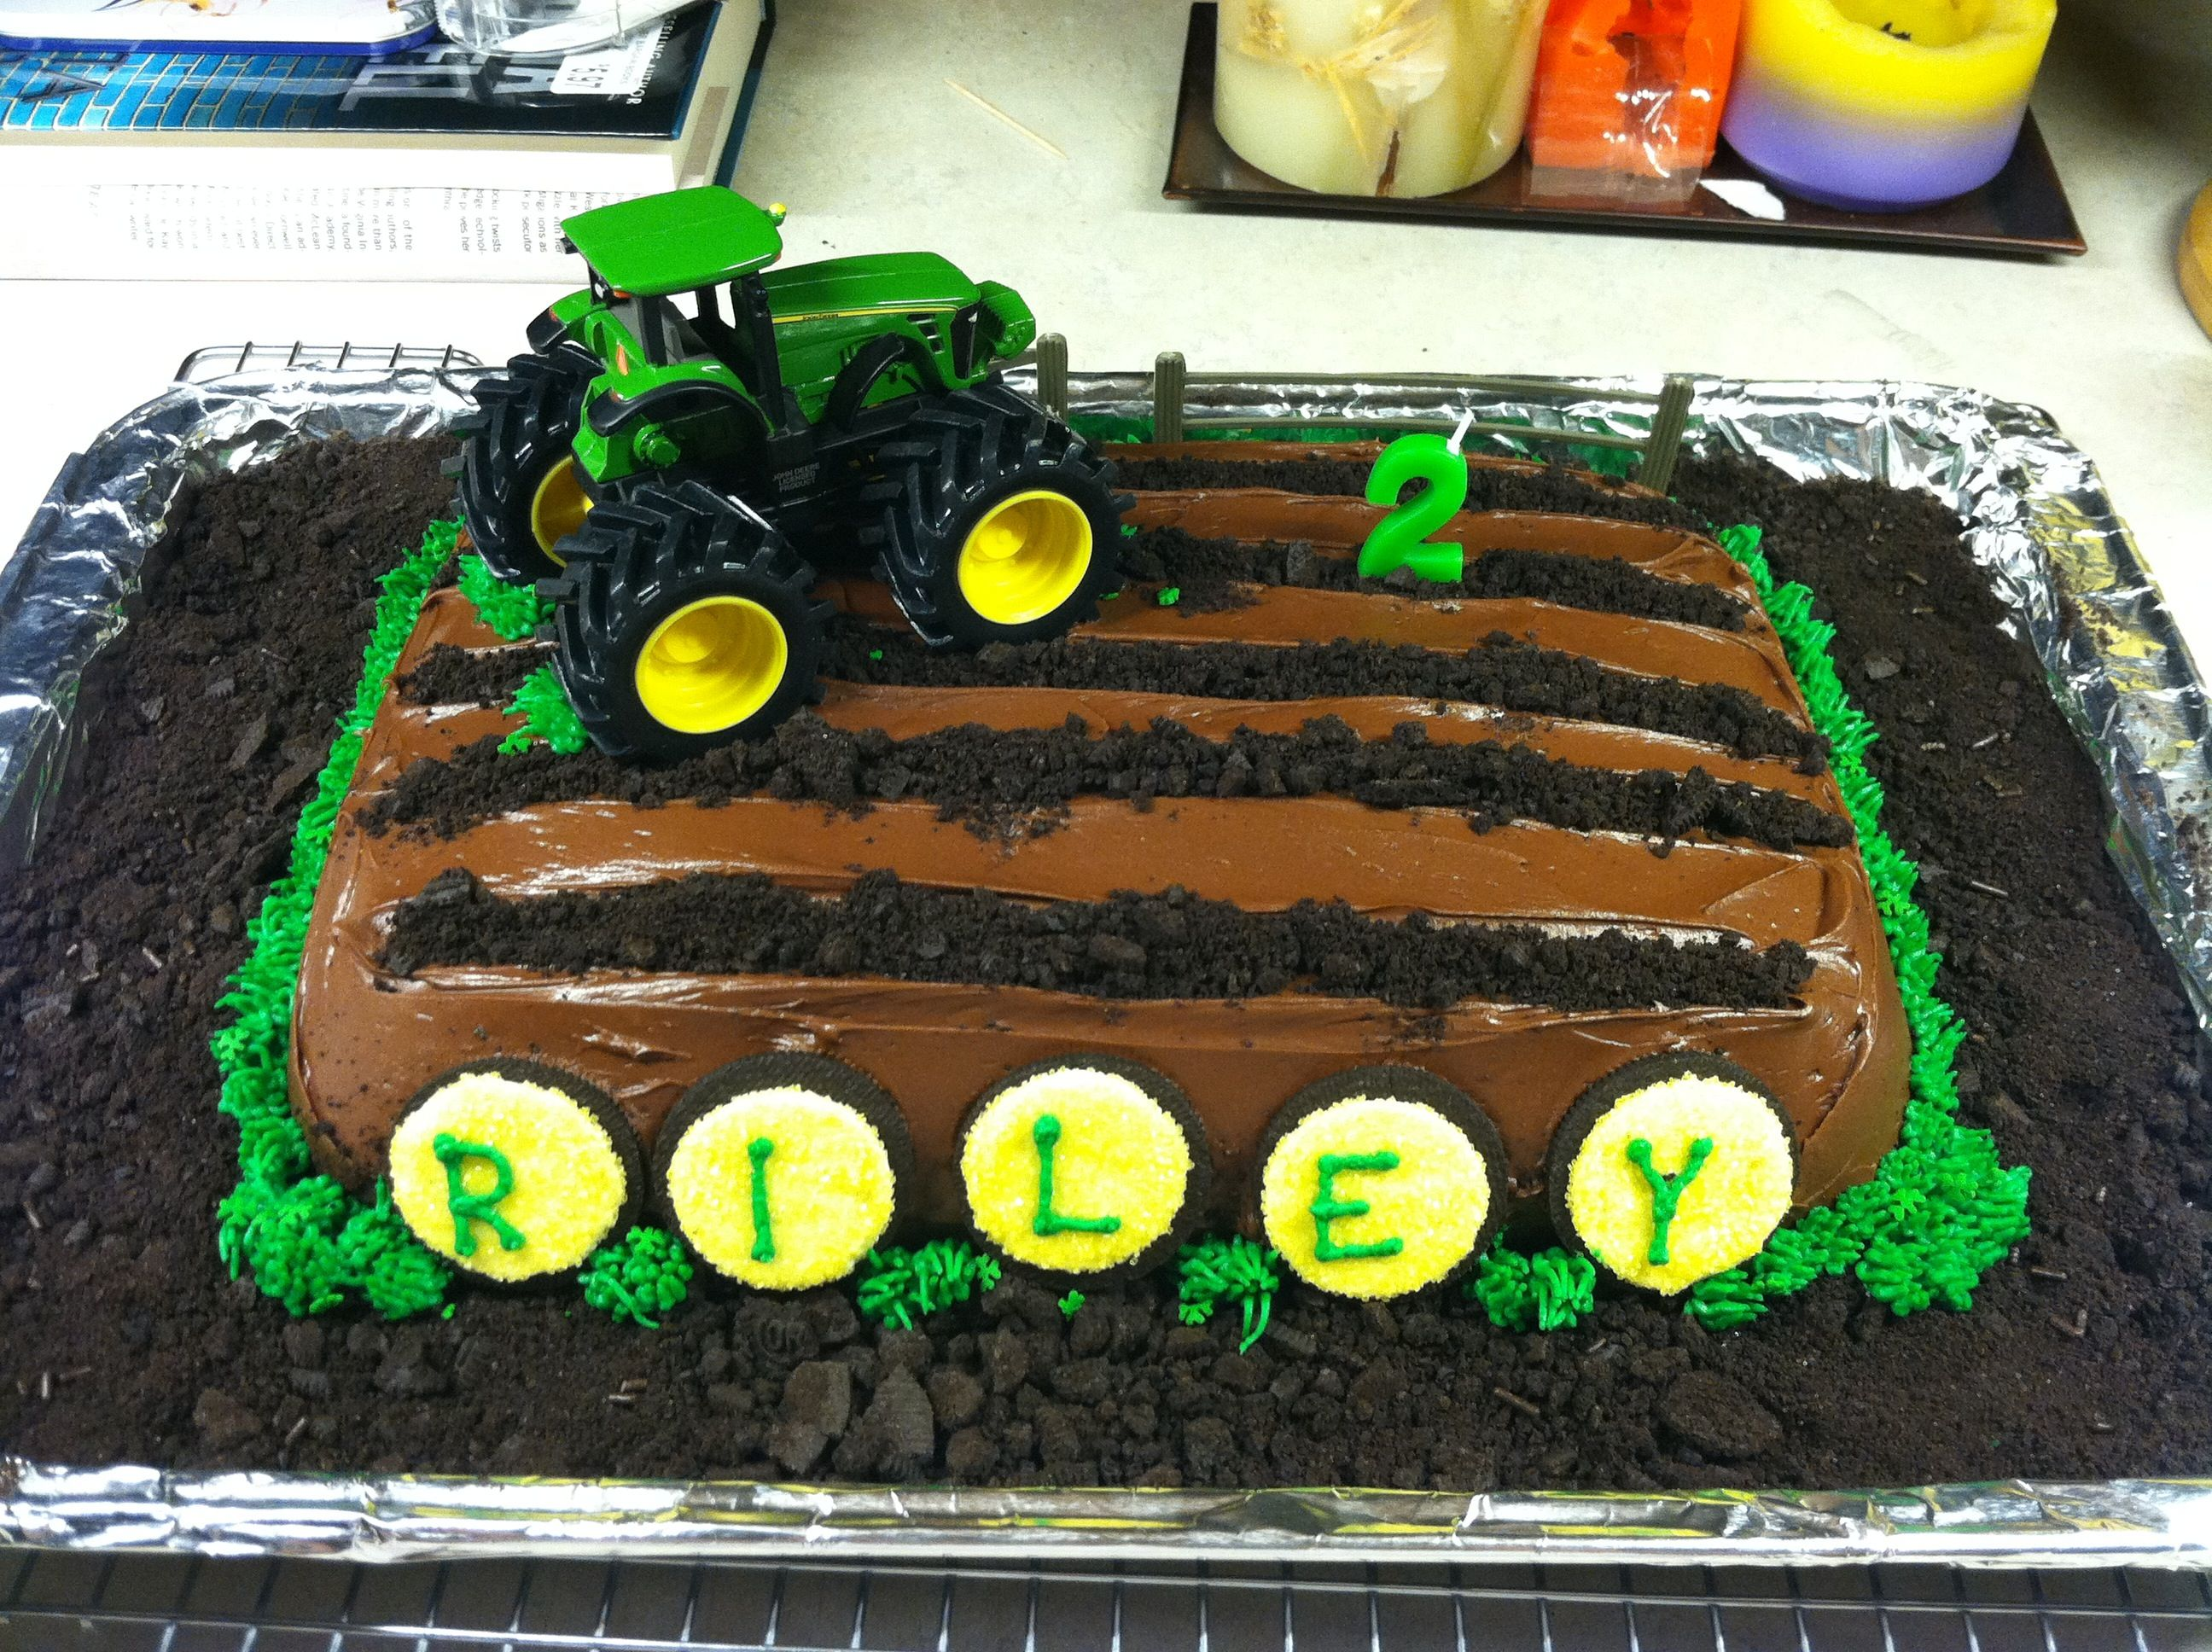 John Deere Tractor Cake White cake with chocolate fudge icing and